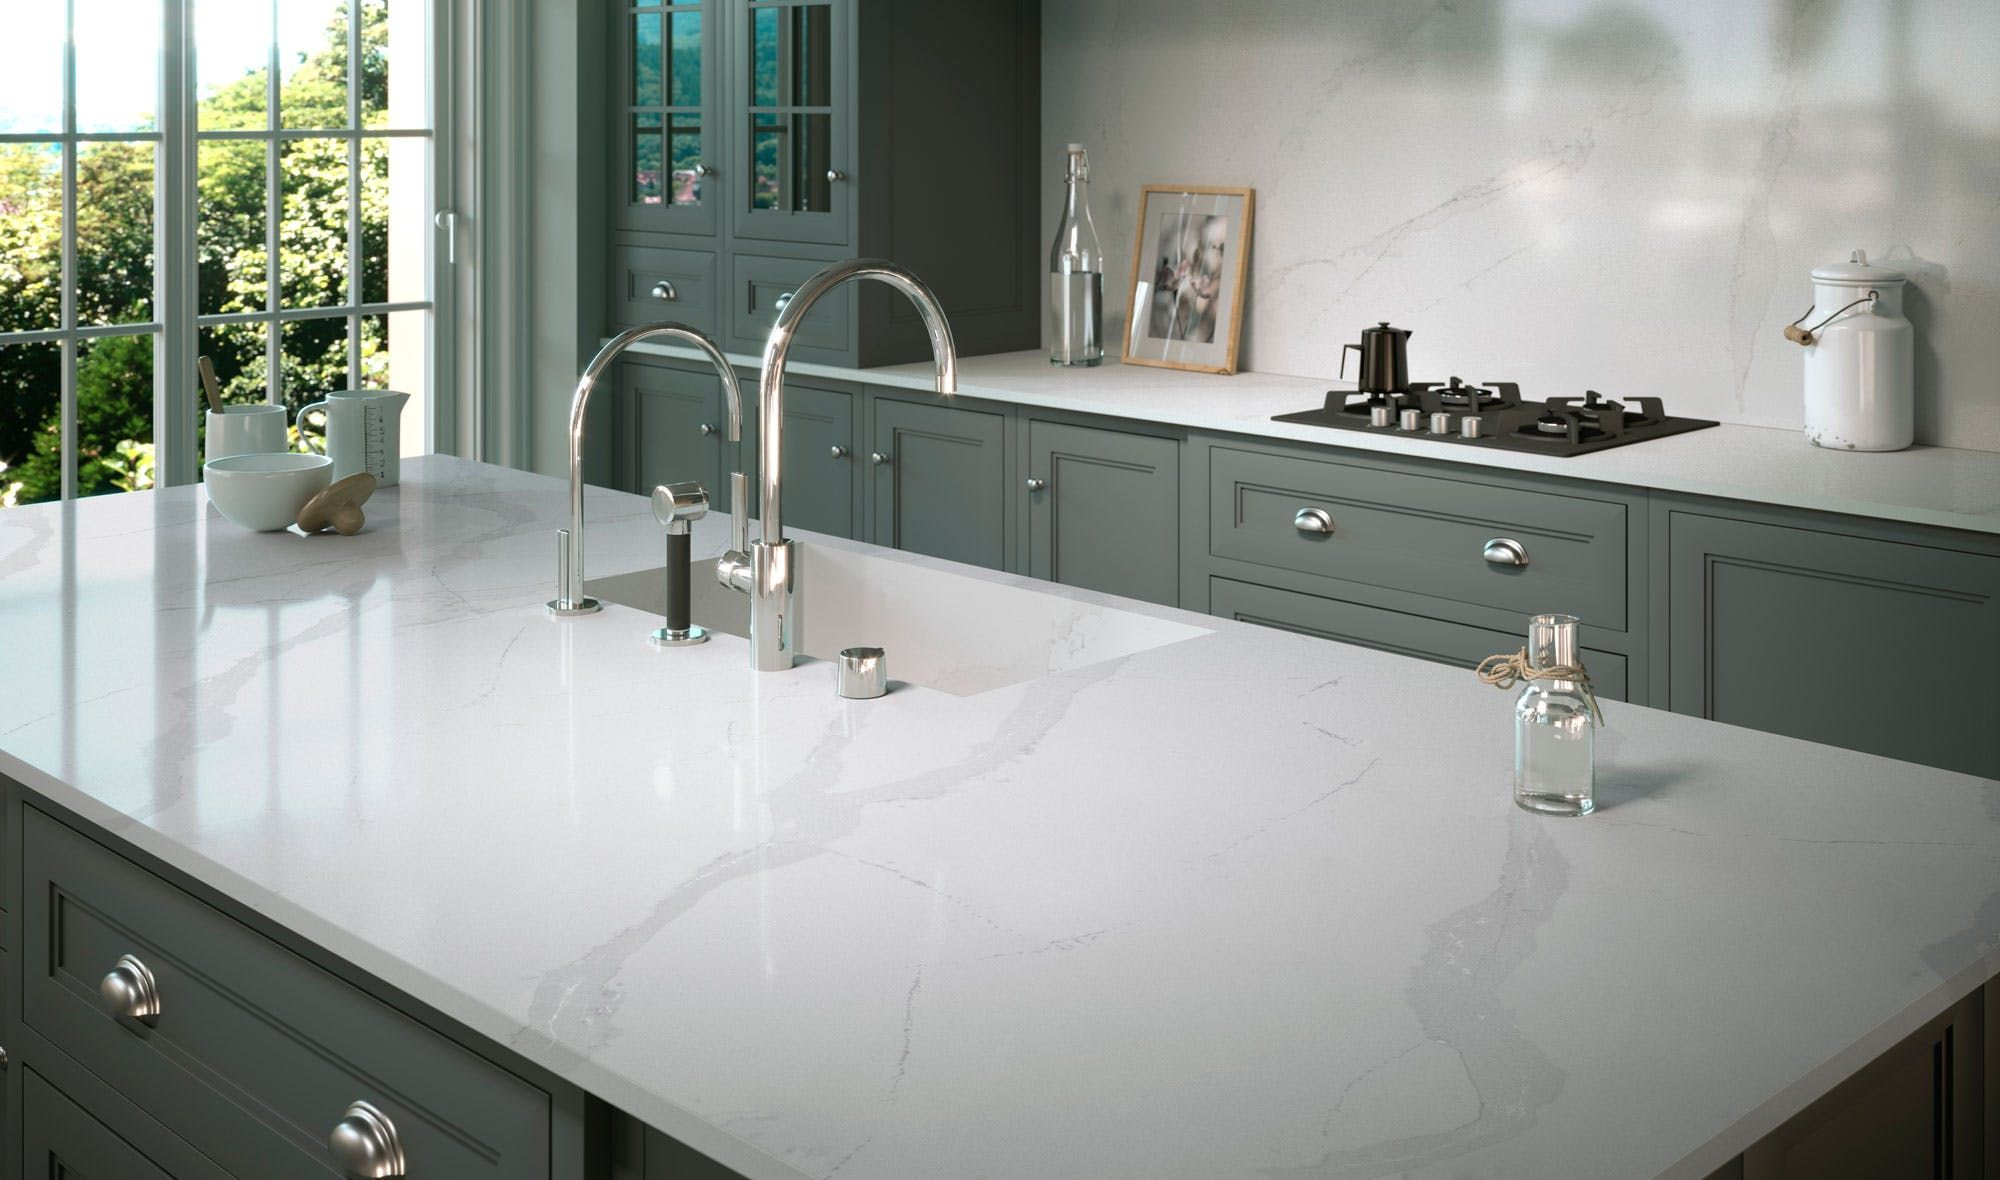 Best Silestone Kitchen Calacatta Classic Countertop Design 640 x 480